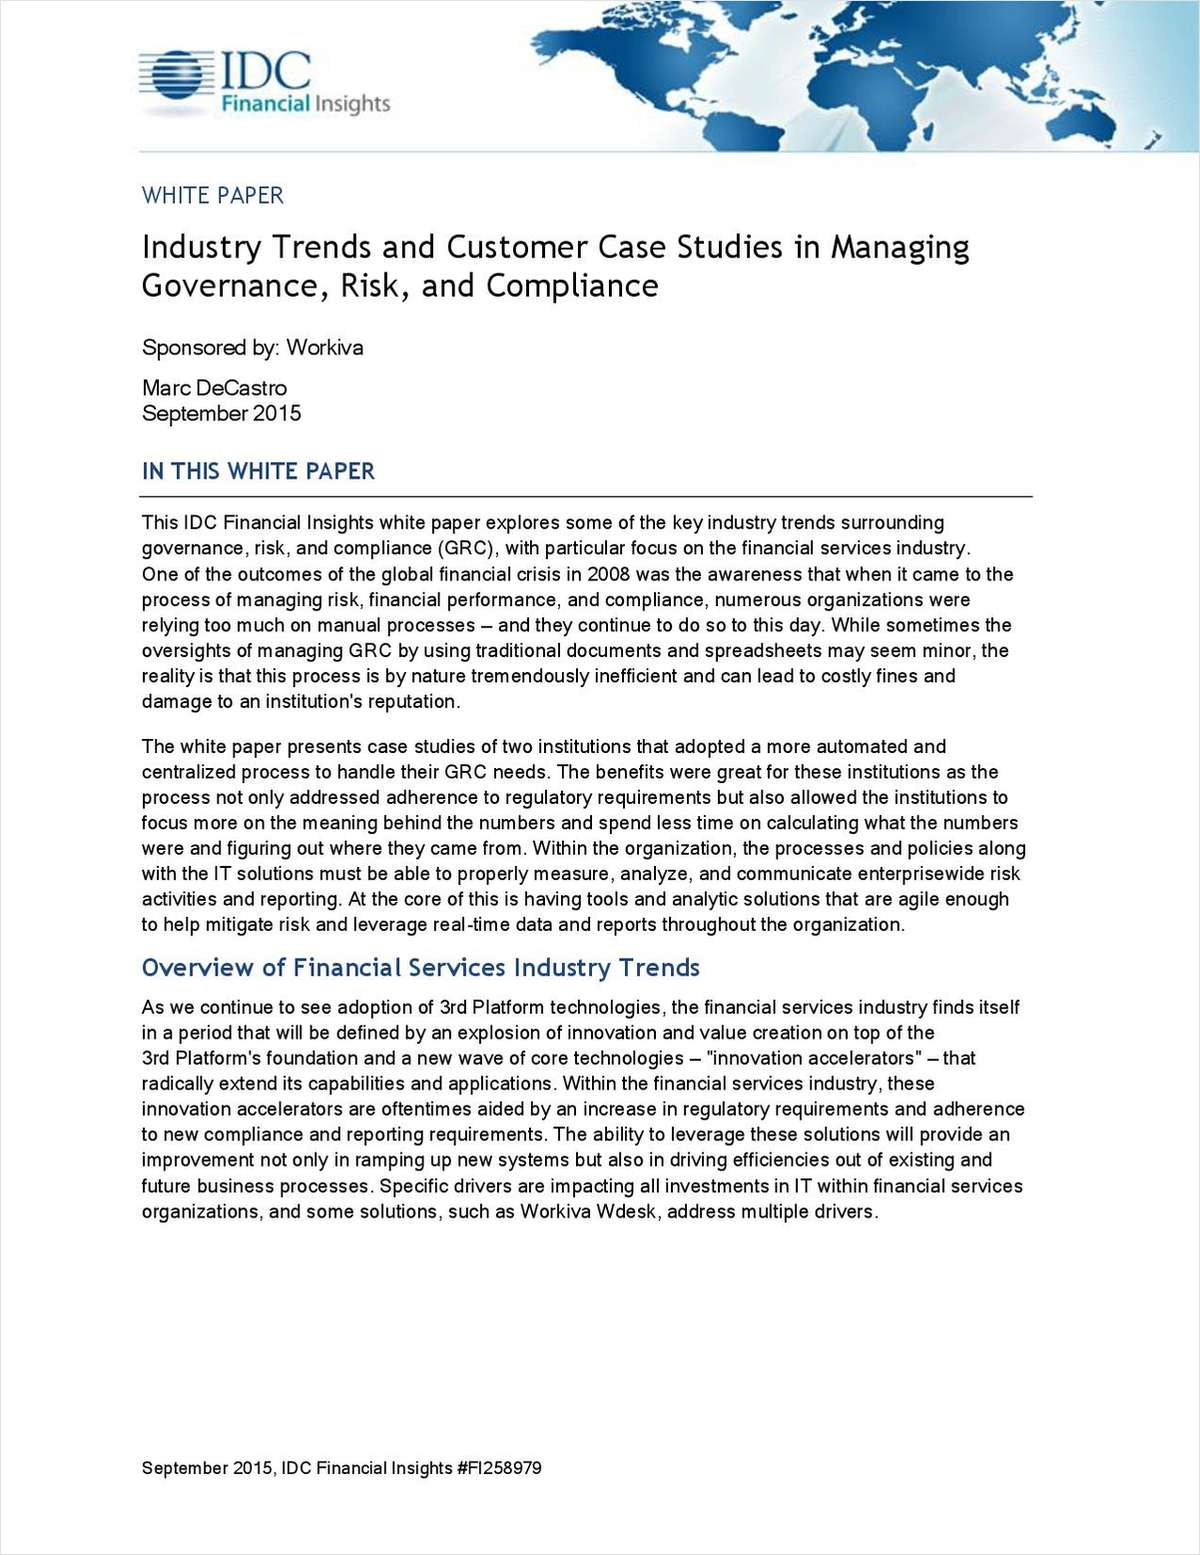 Industry Trends and Customer Case Studies in Managing GRC